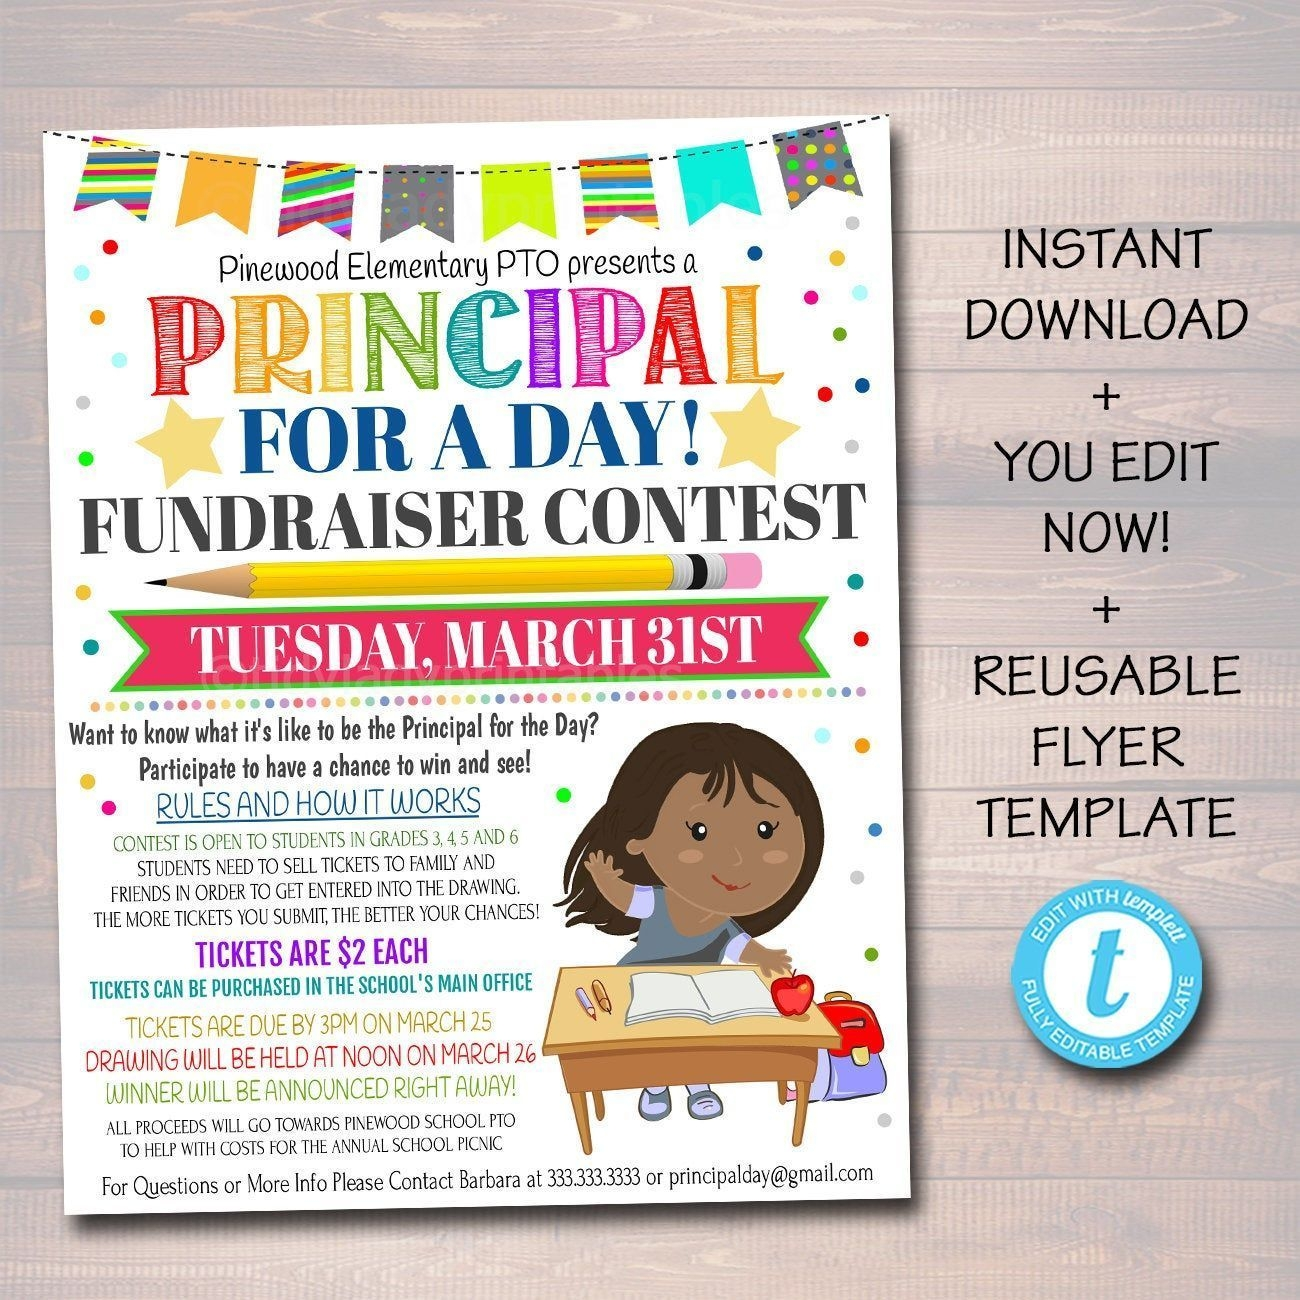 Editable Principal For A Day Contest Fundraiser Flyer